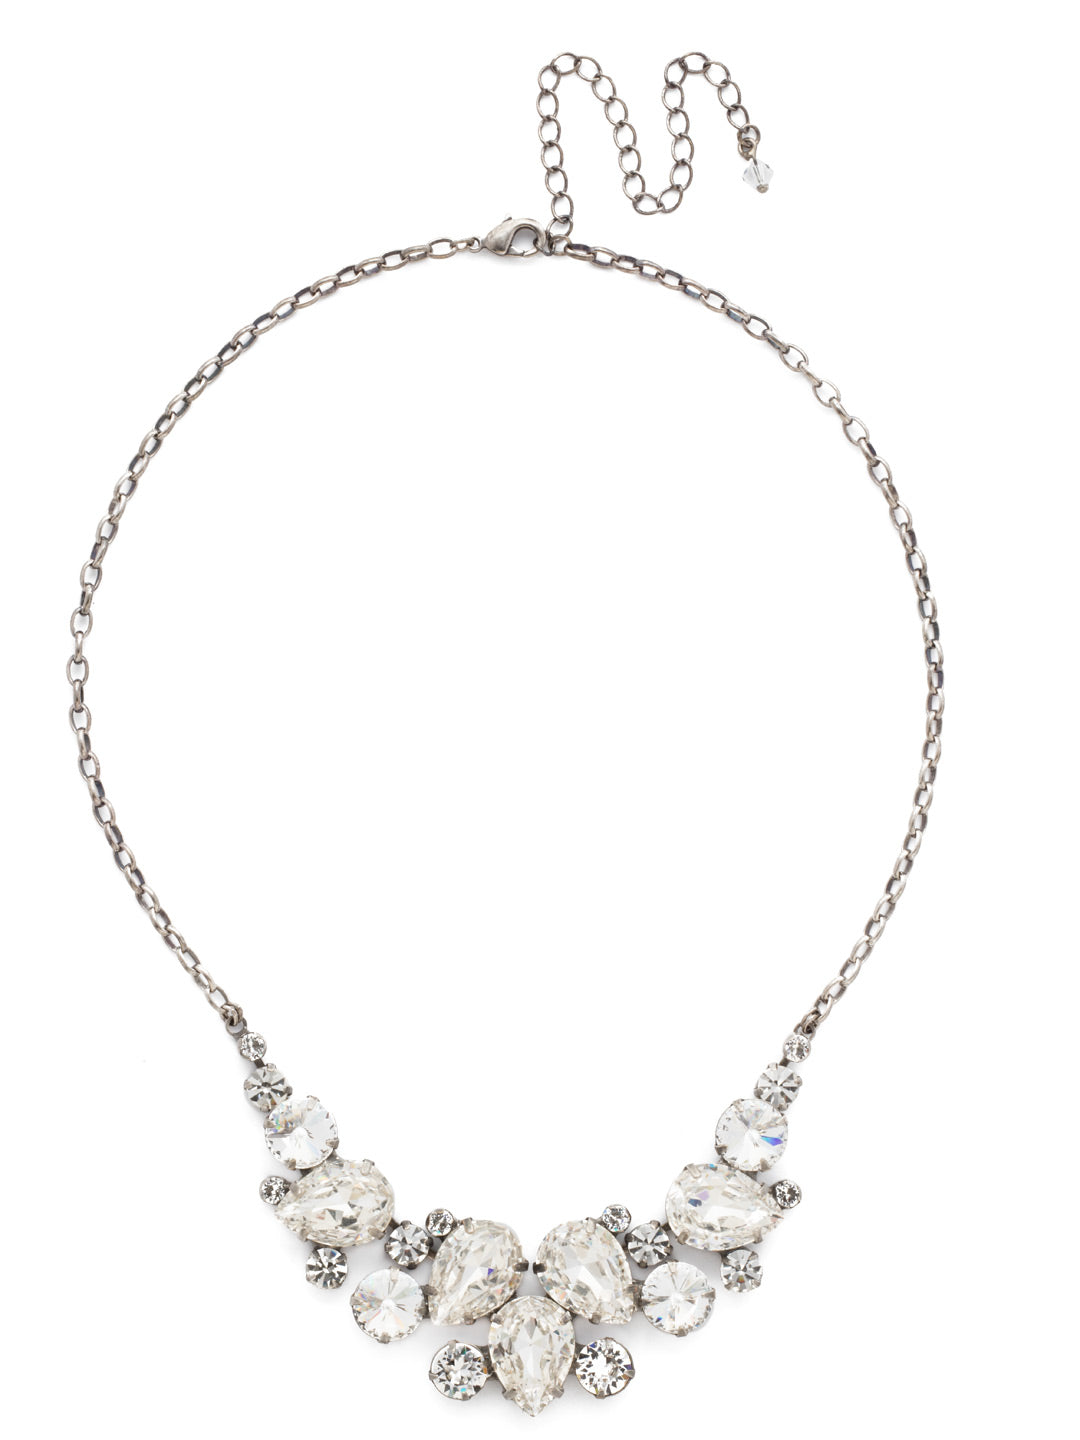 Nested Pear Statement Necklace - NDJ14ASCRY